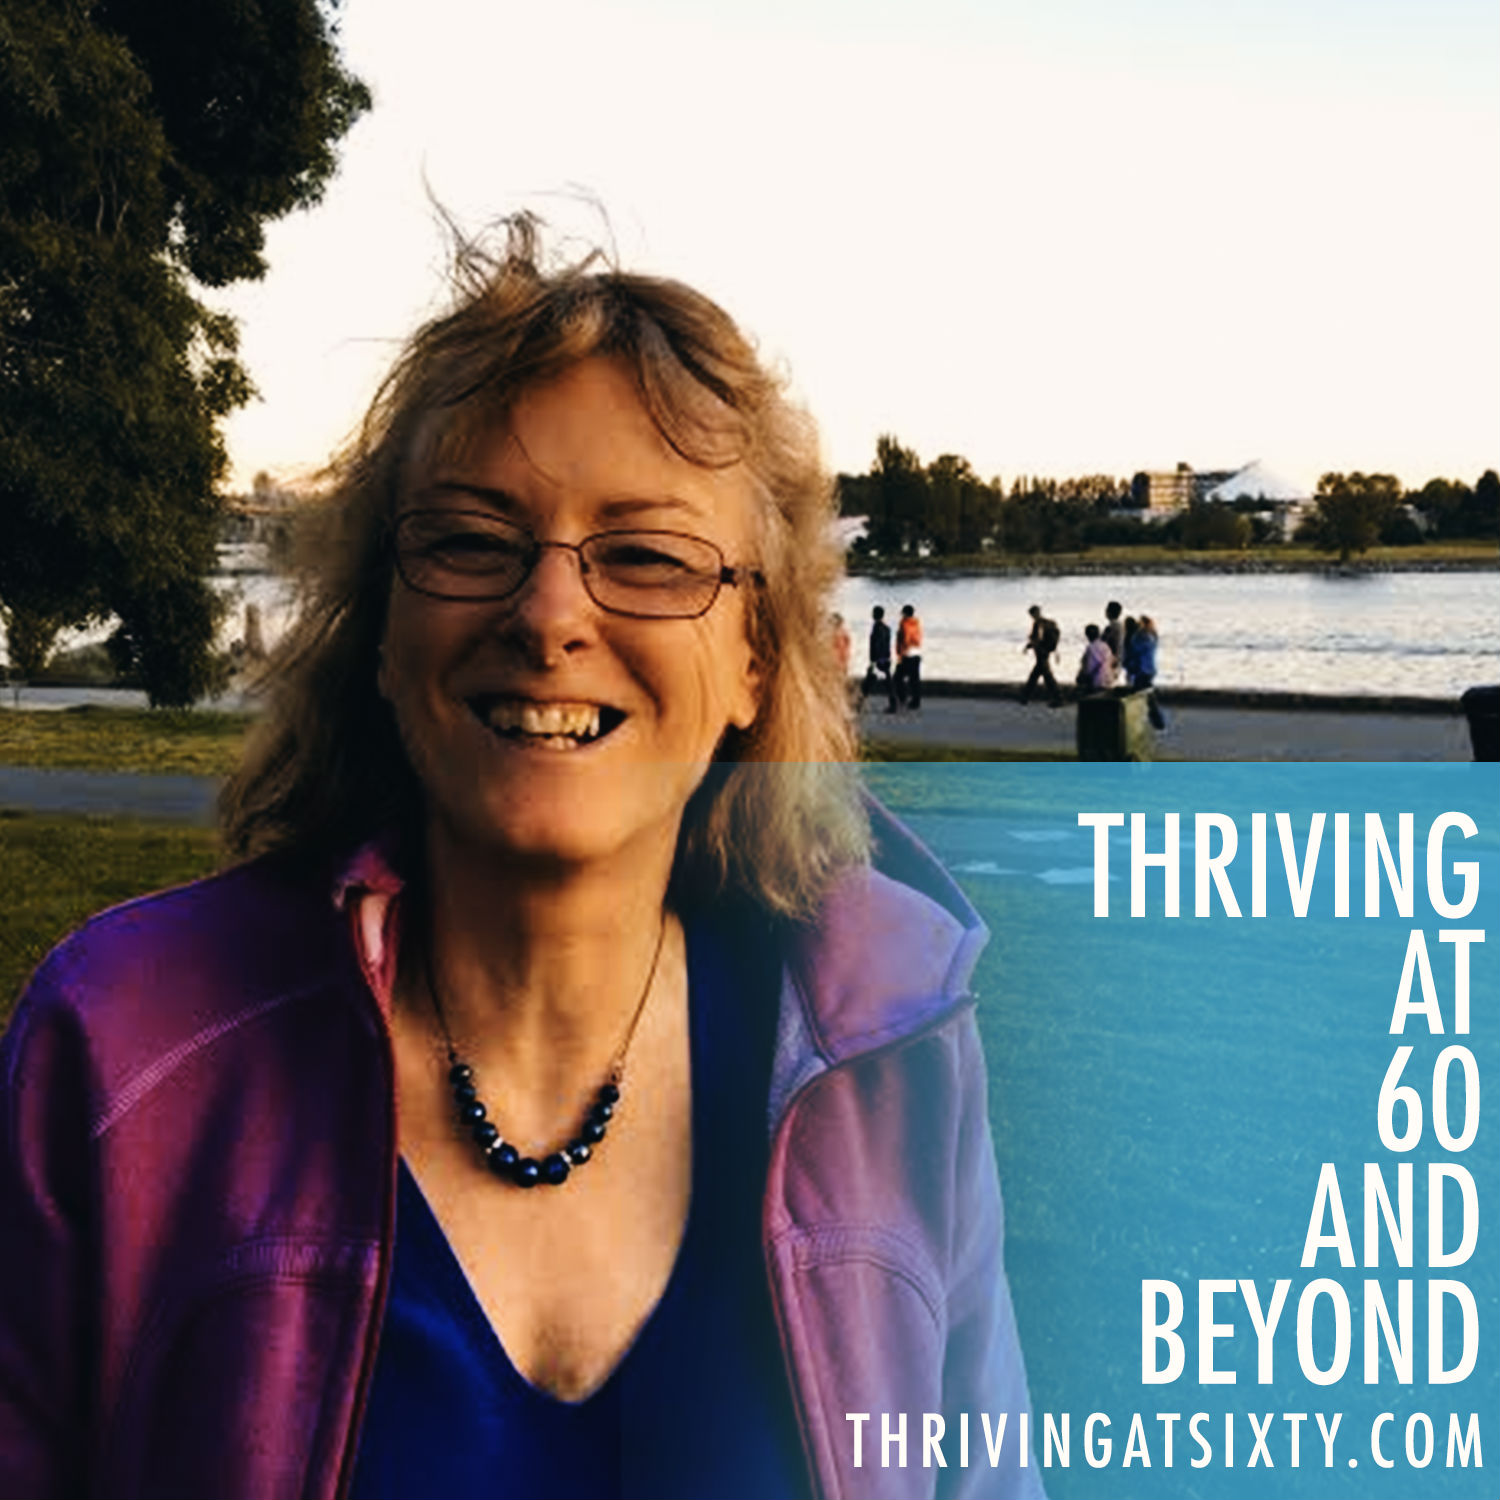 Thriving at sixty